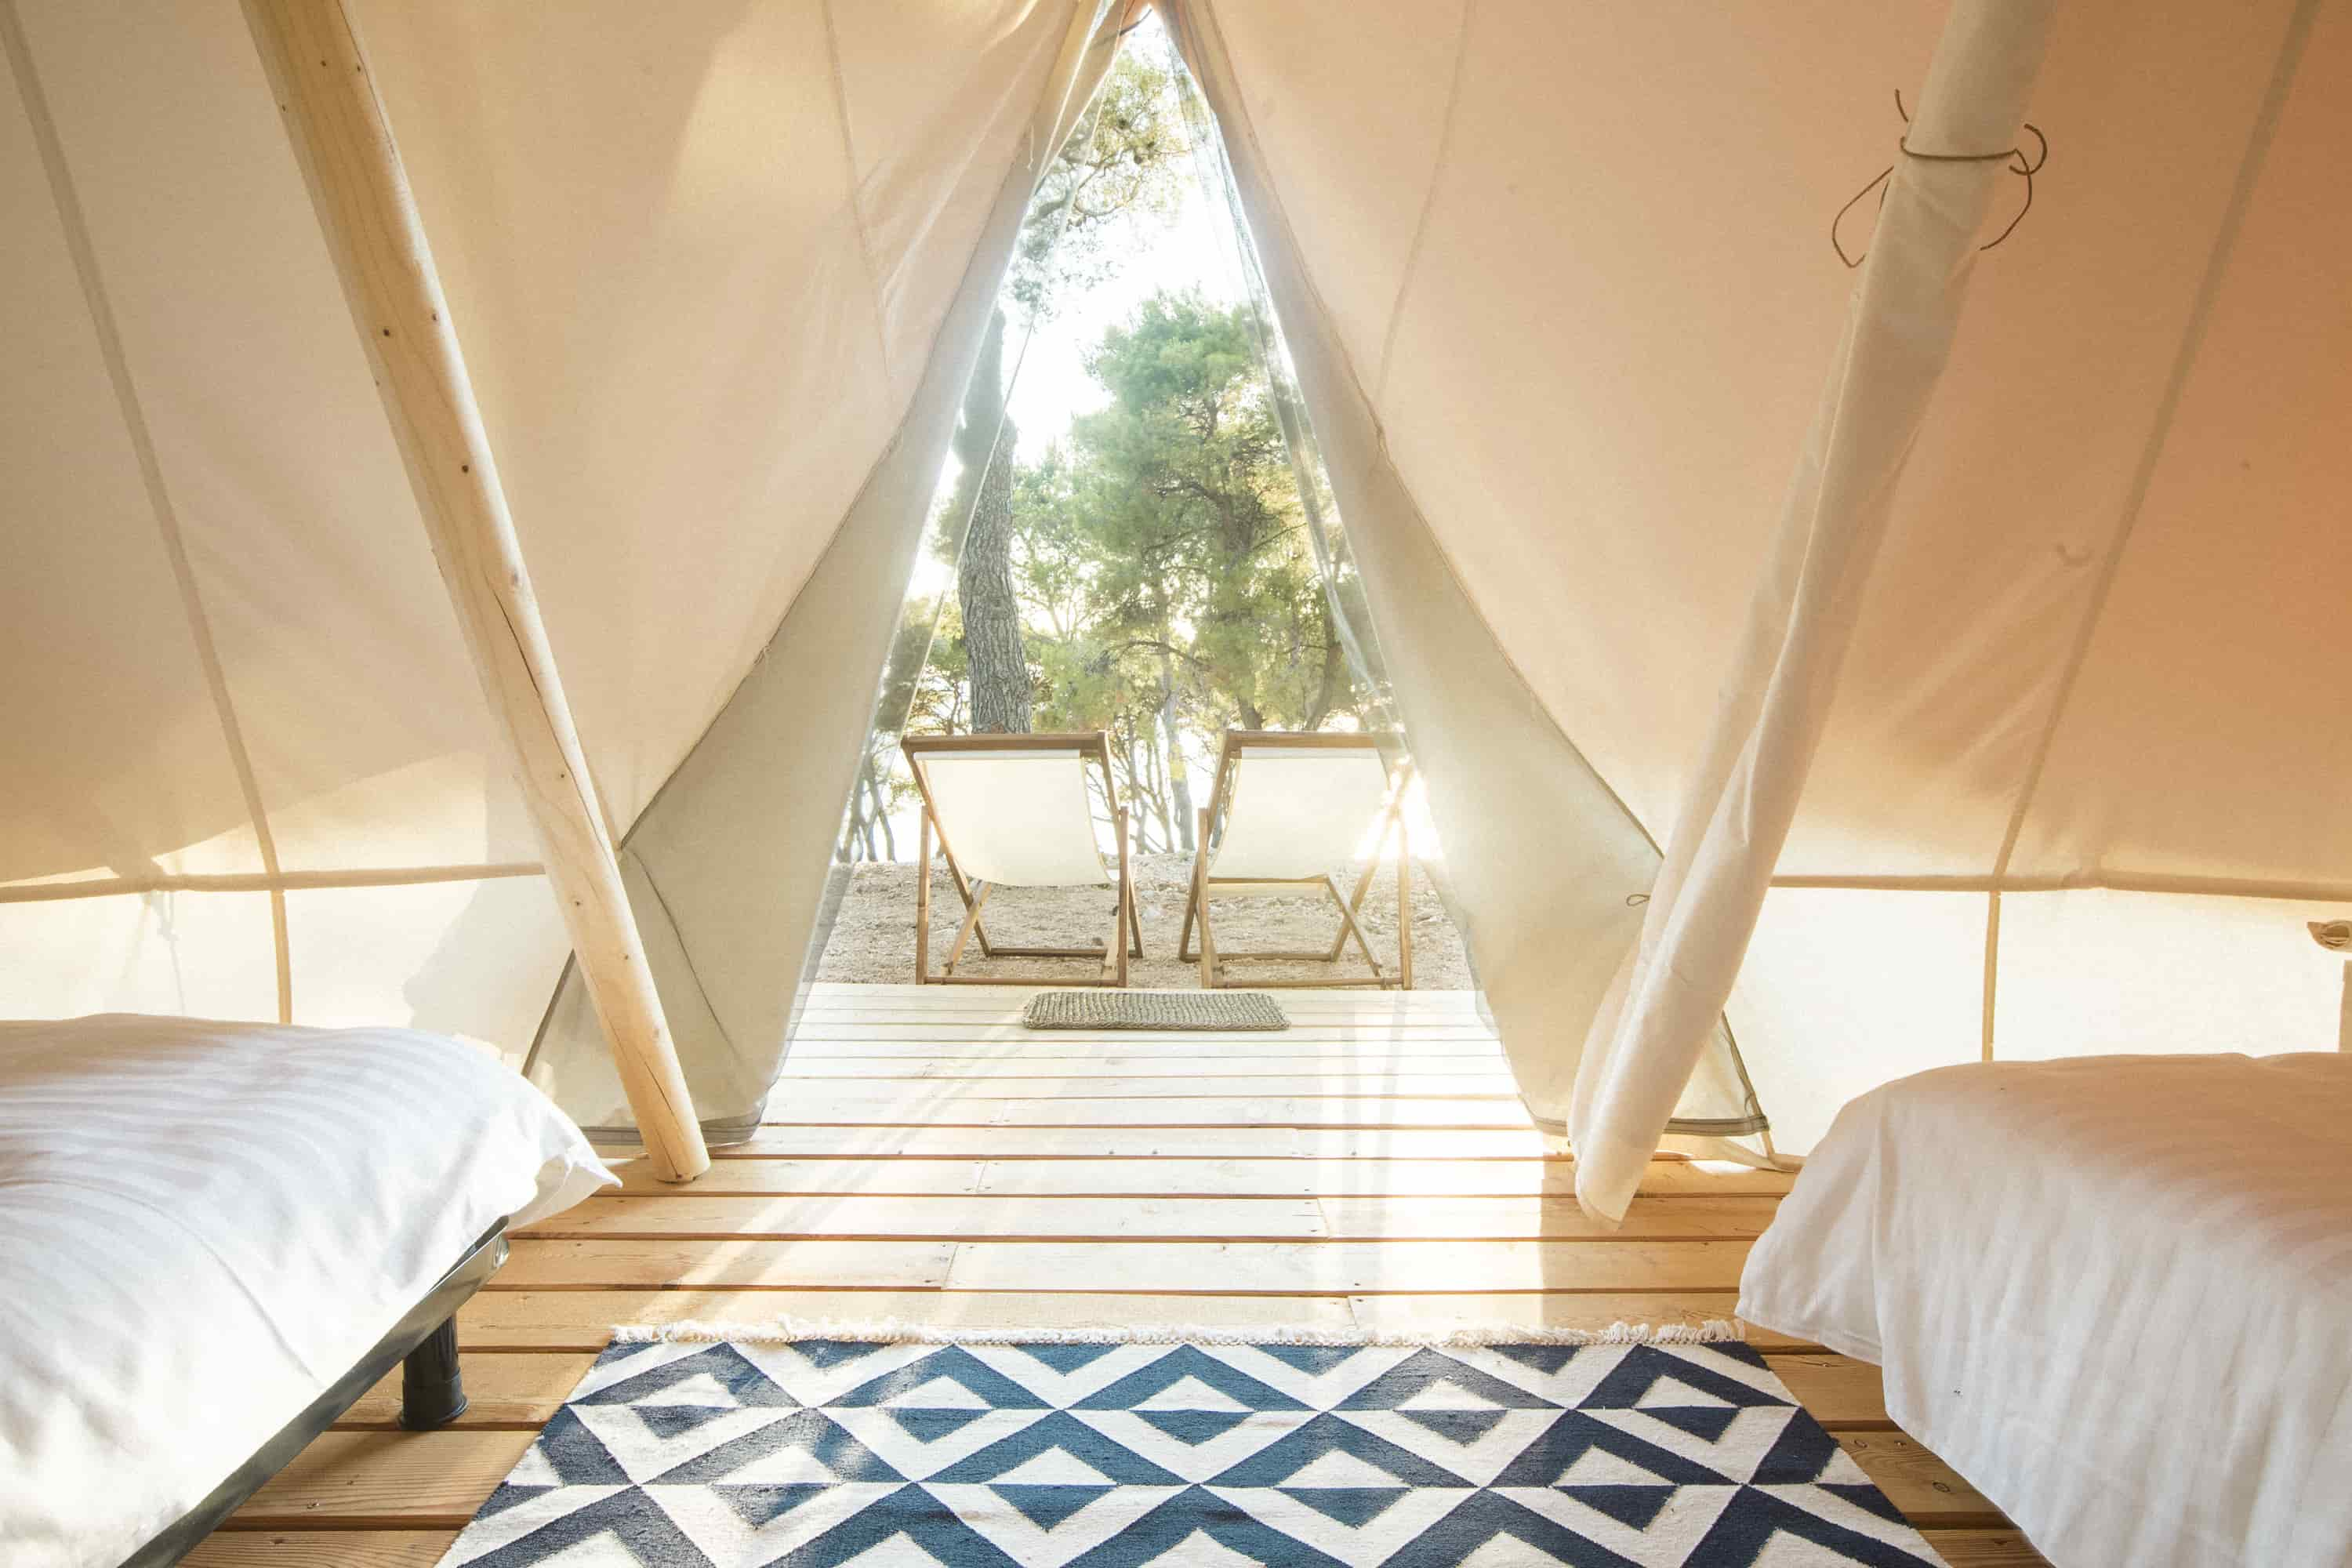 BELL TENTS 149€